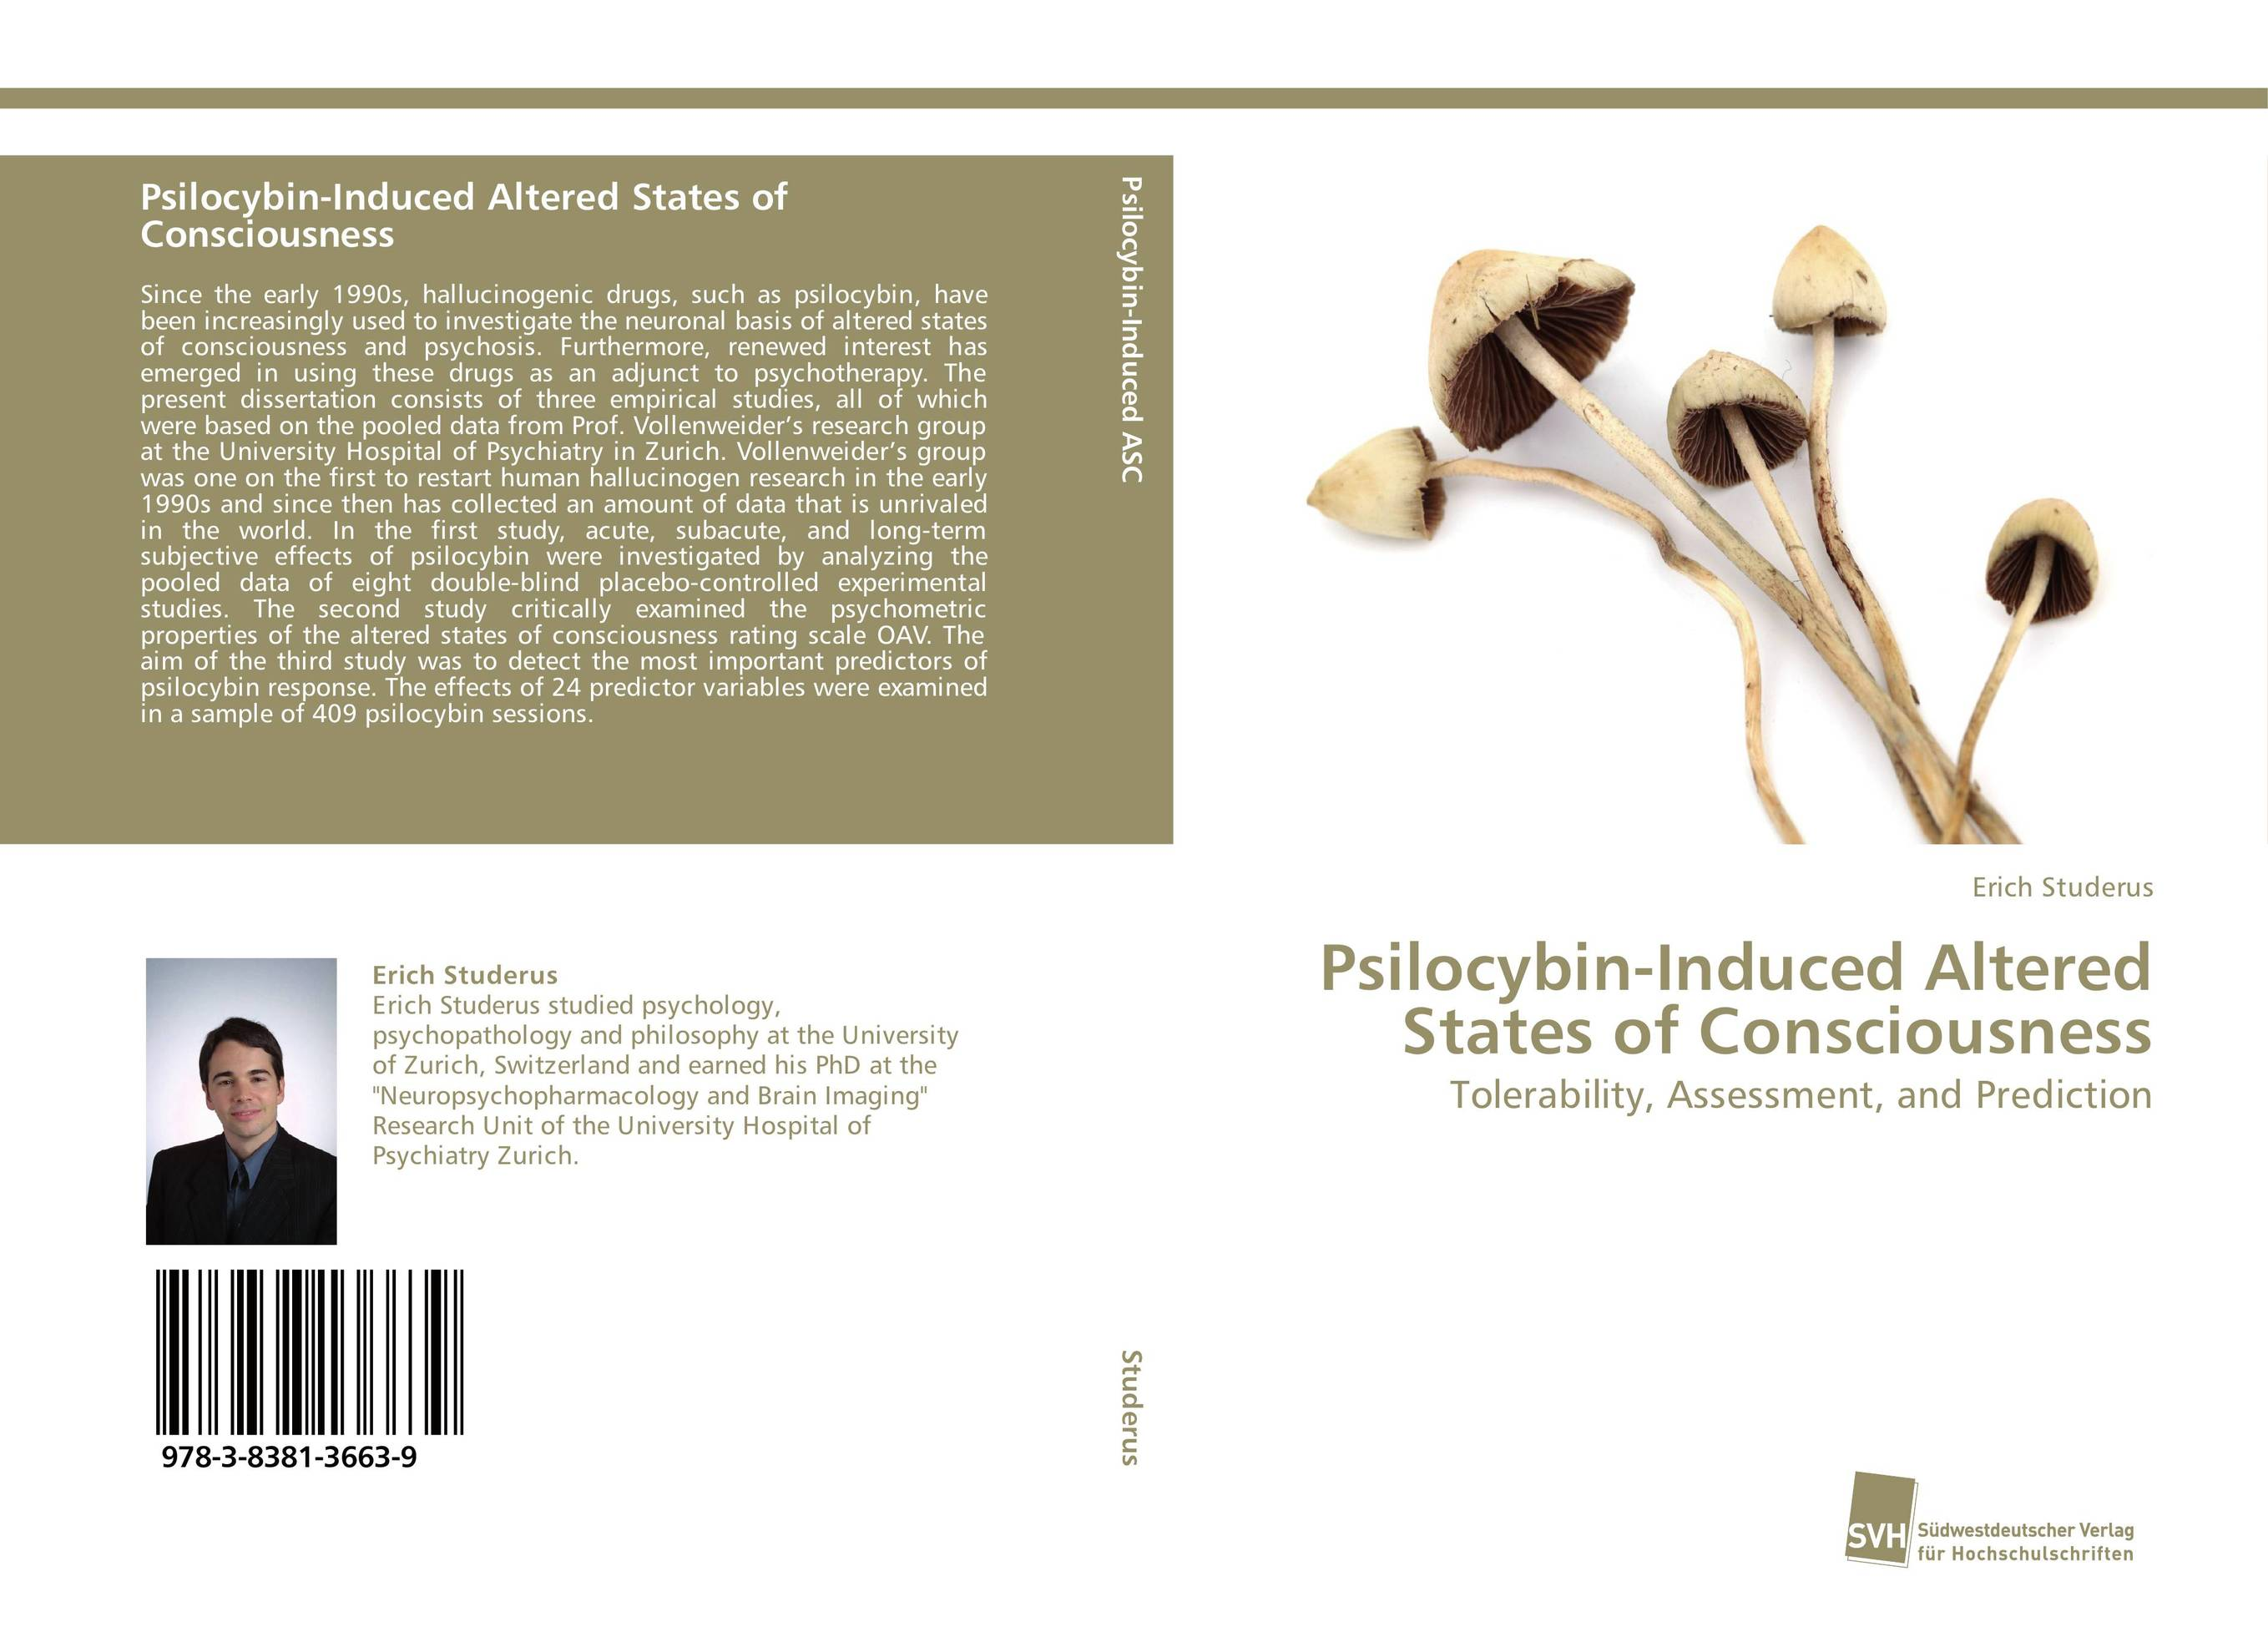 Psilocybin-Induced Altered States of Consciousness j allan hobson the dream drugstore – chemically altered states of consciousness